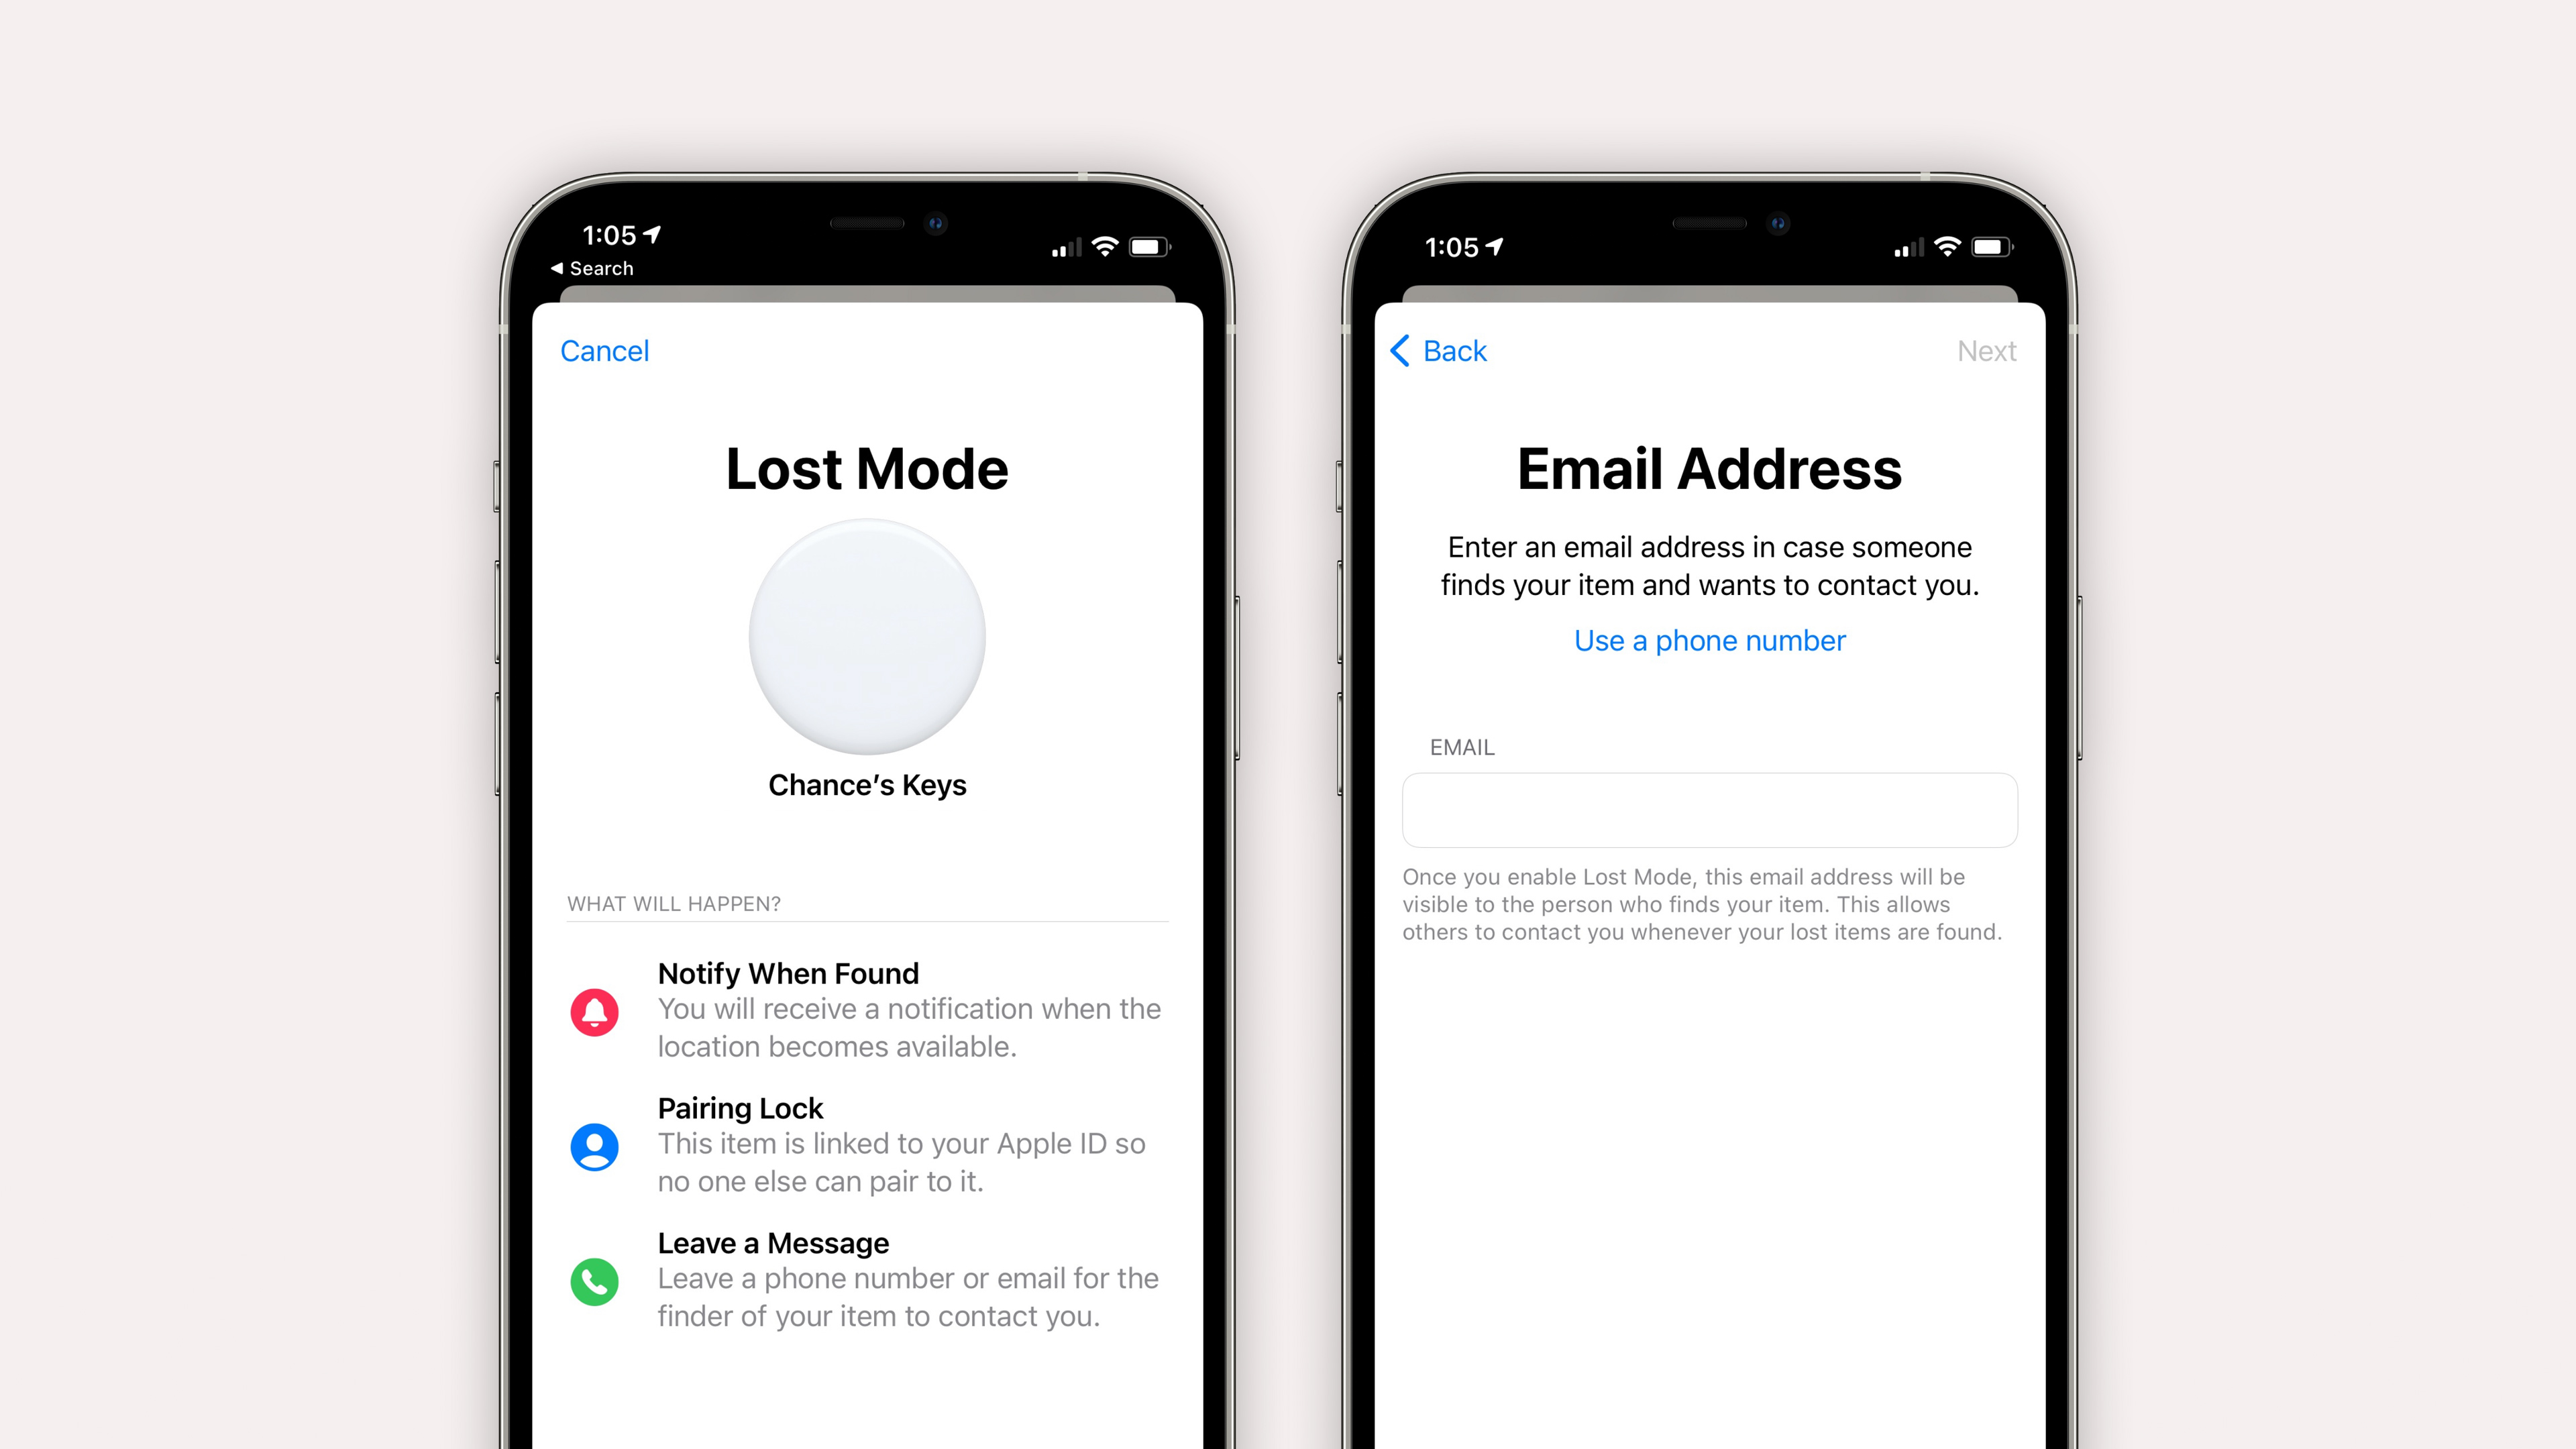 iOS 14.6 lets you use an email address to put AirTag and other items into Lost Mode